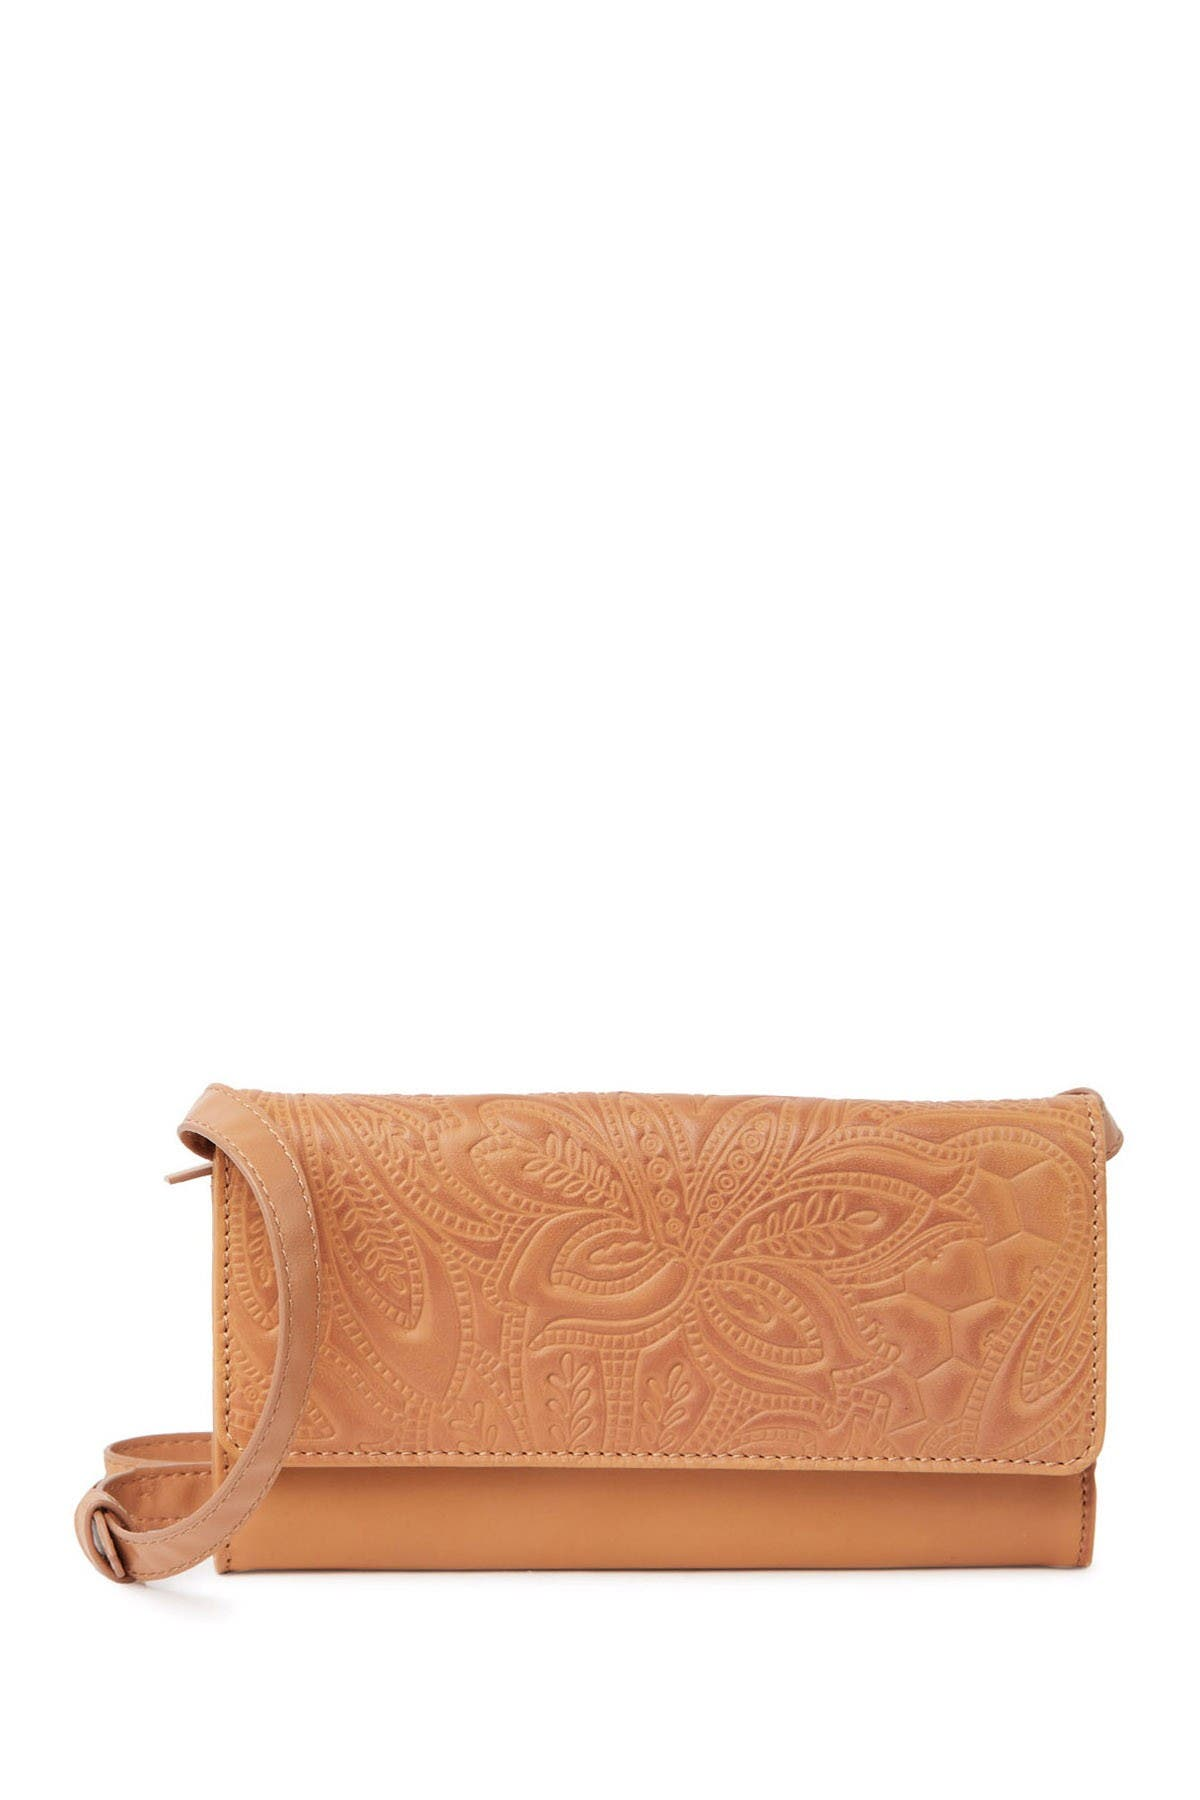 Image of Lucky Brand Lina Embossed Convertible Wallet